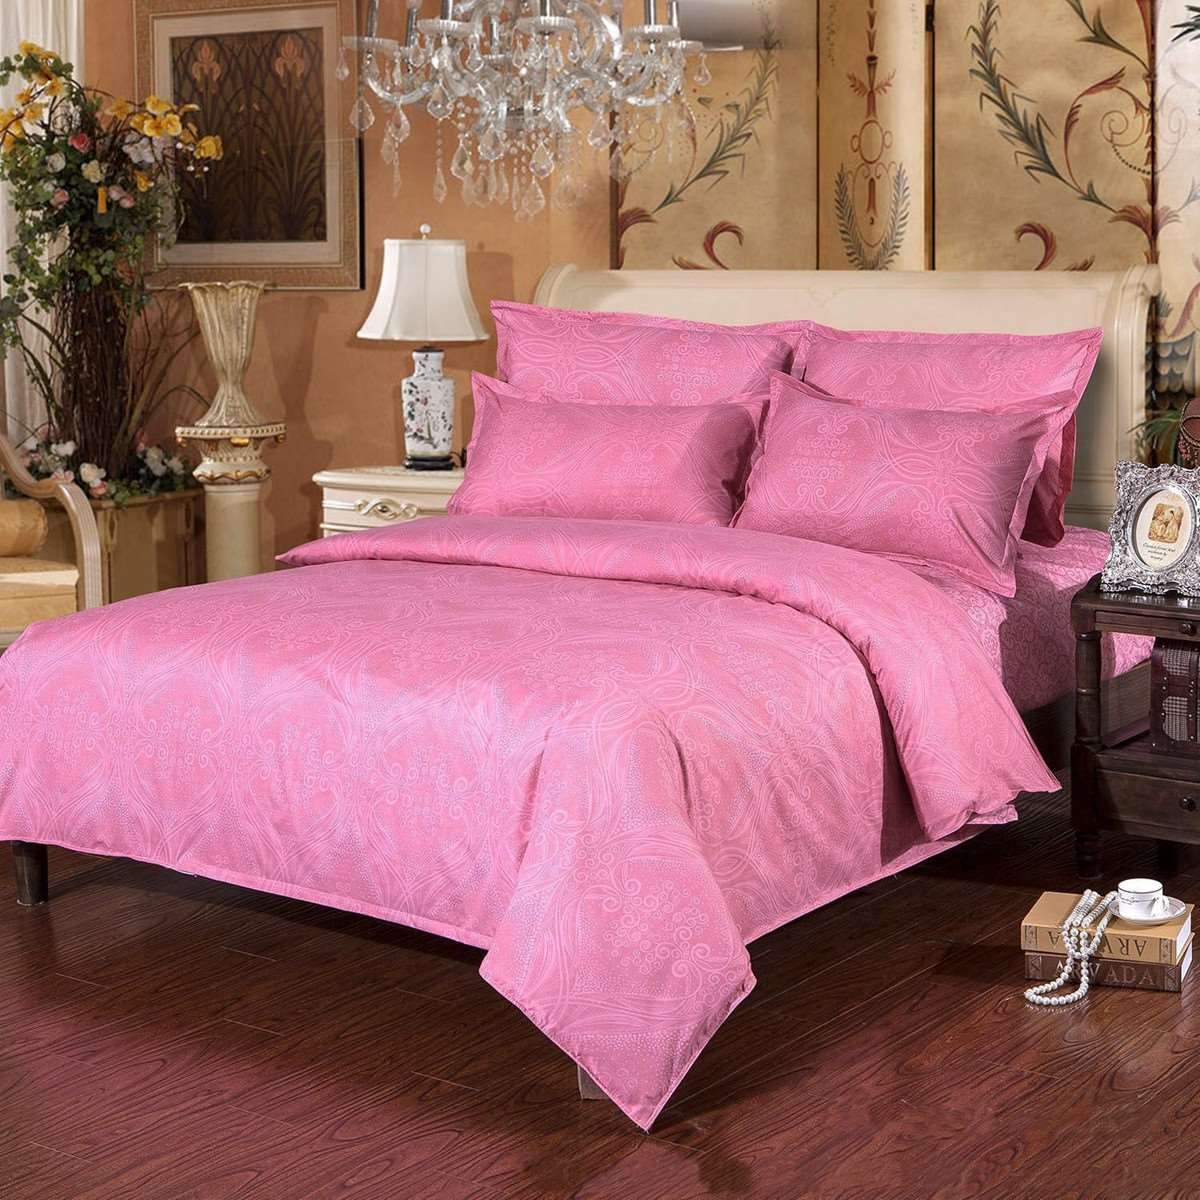 Black and pink bed sheets - Simple Pink Flower Print Bedding Sets Soft Polyester Quilt Duvet Cover Queen Bed Bedsheet Pillowcase Single Double King Size